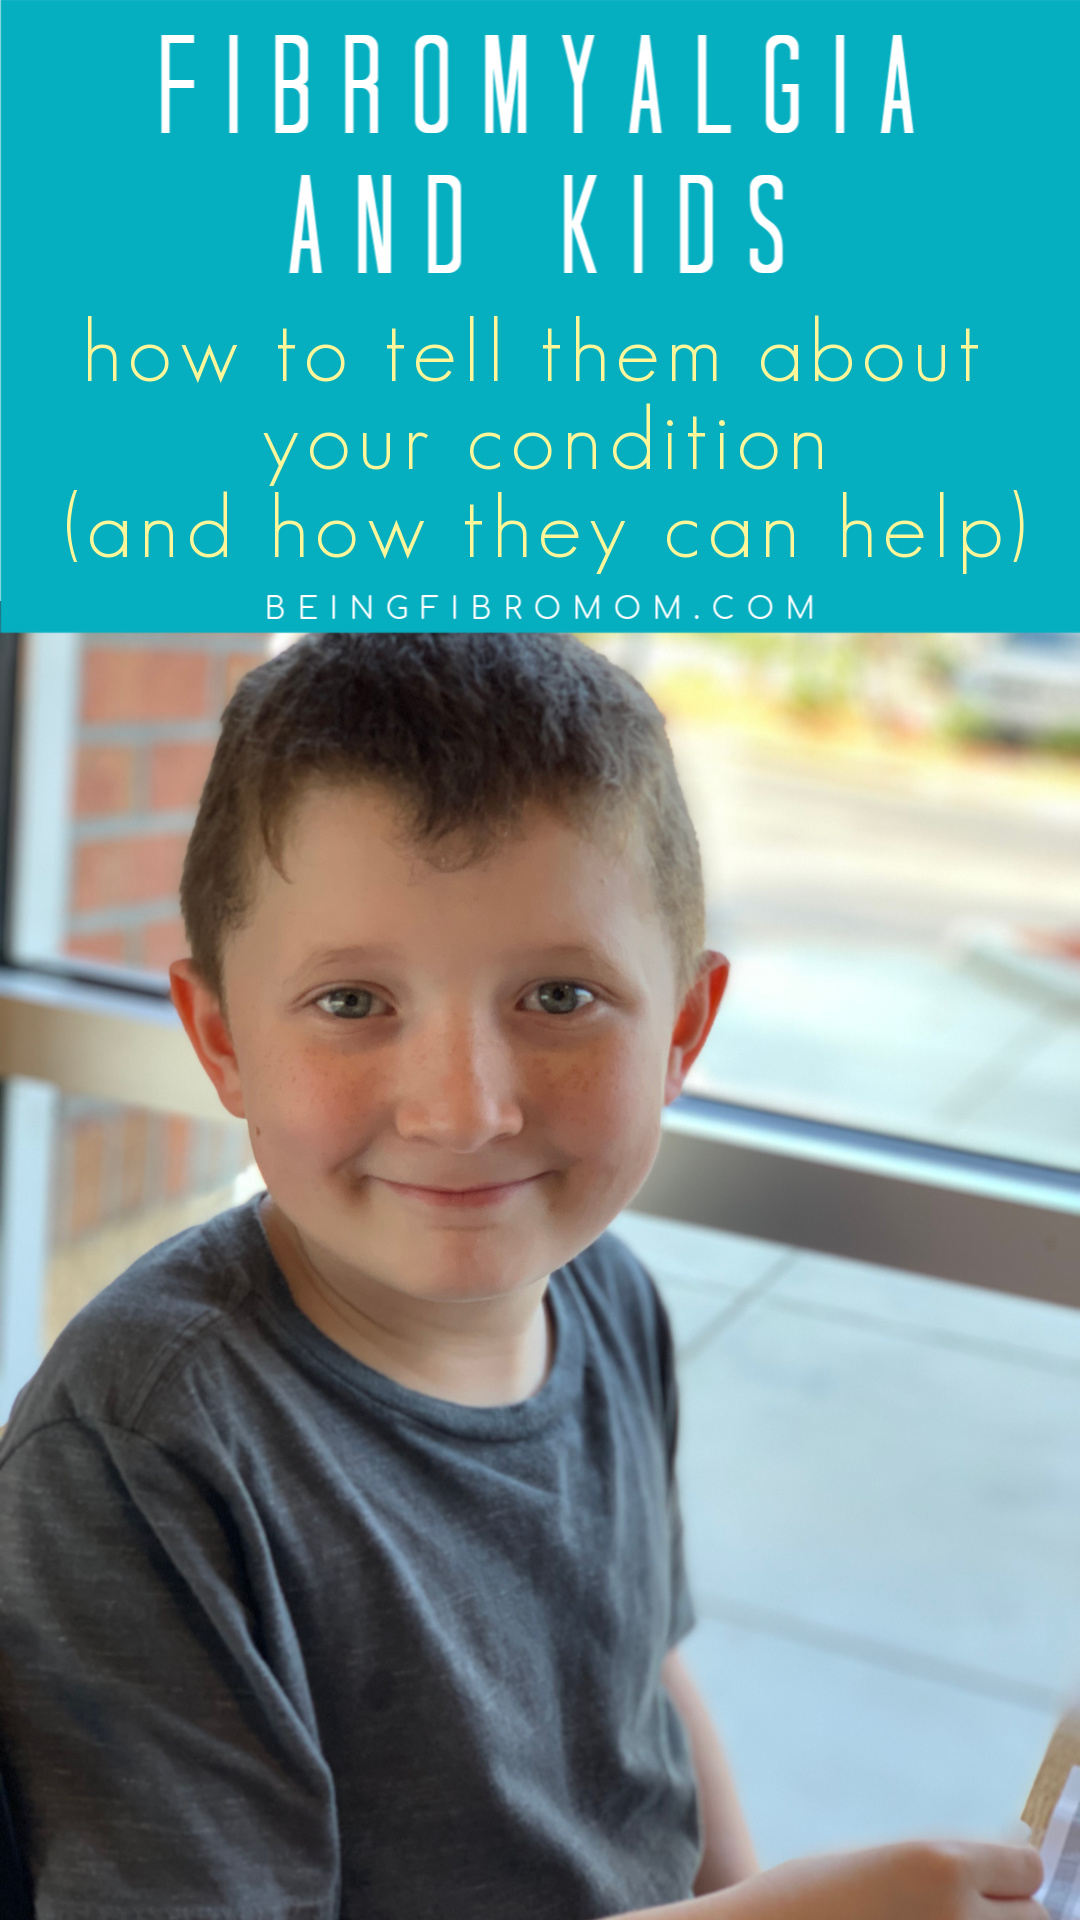 Fibromyalgia and Kids: how to tell them about your condition (and how they can help) #fibroparenting #beingfibromom #fibromyalgia